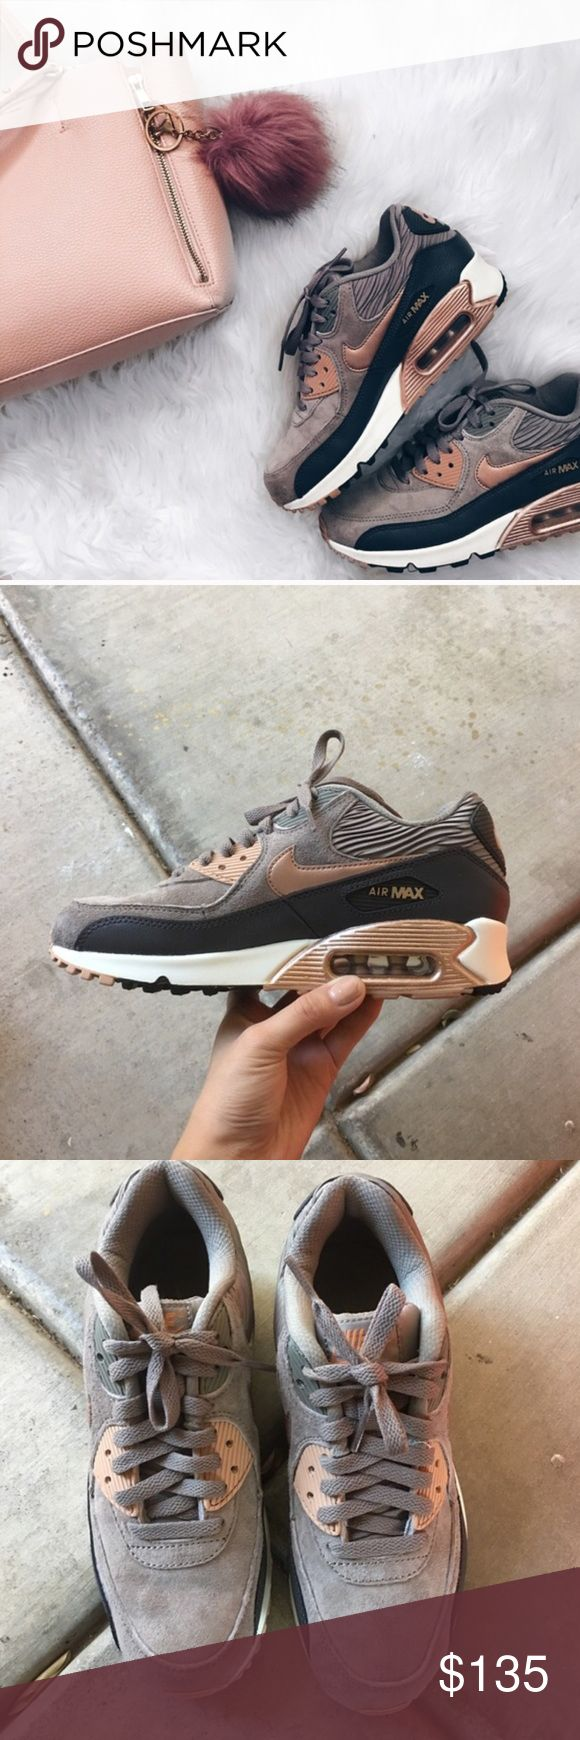 OFFER MEWomen's Nike Air Max 90 Bronze Brand new with the box but no lid. Sold Out Shoe Nike Shoes Athletic Shoes